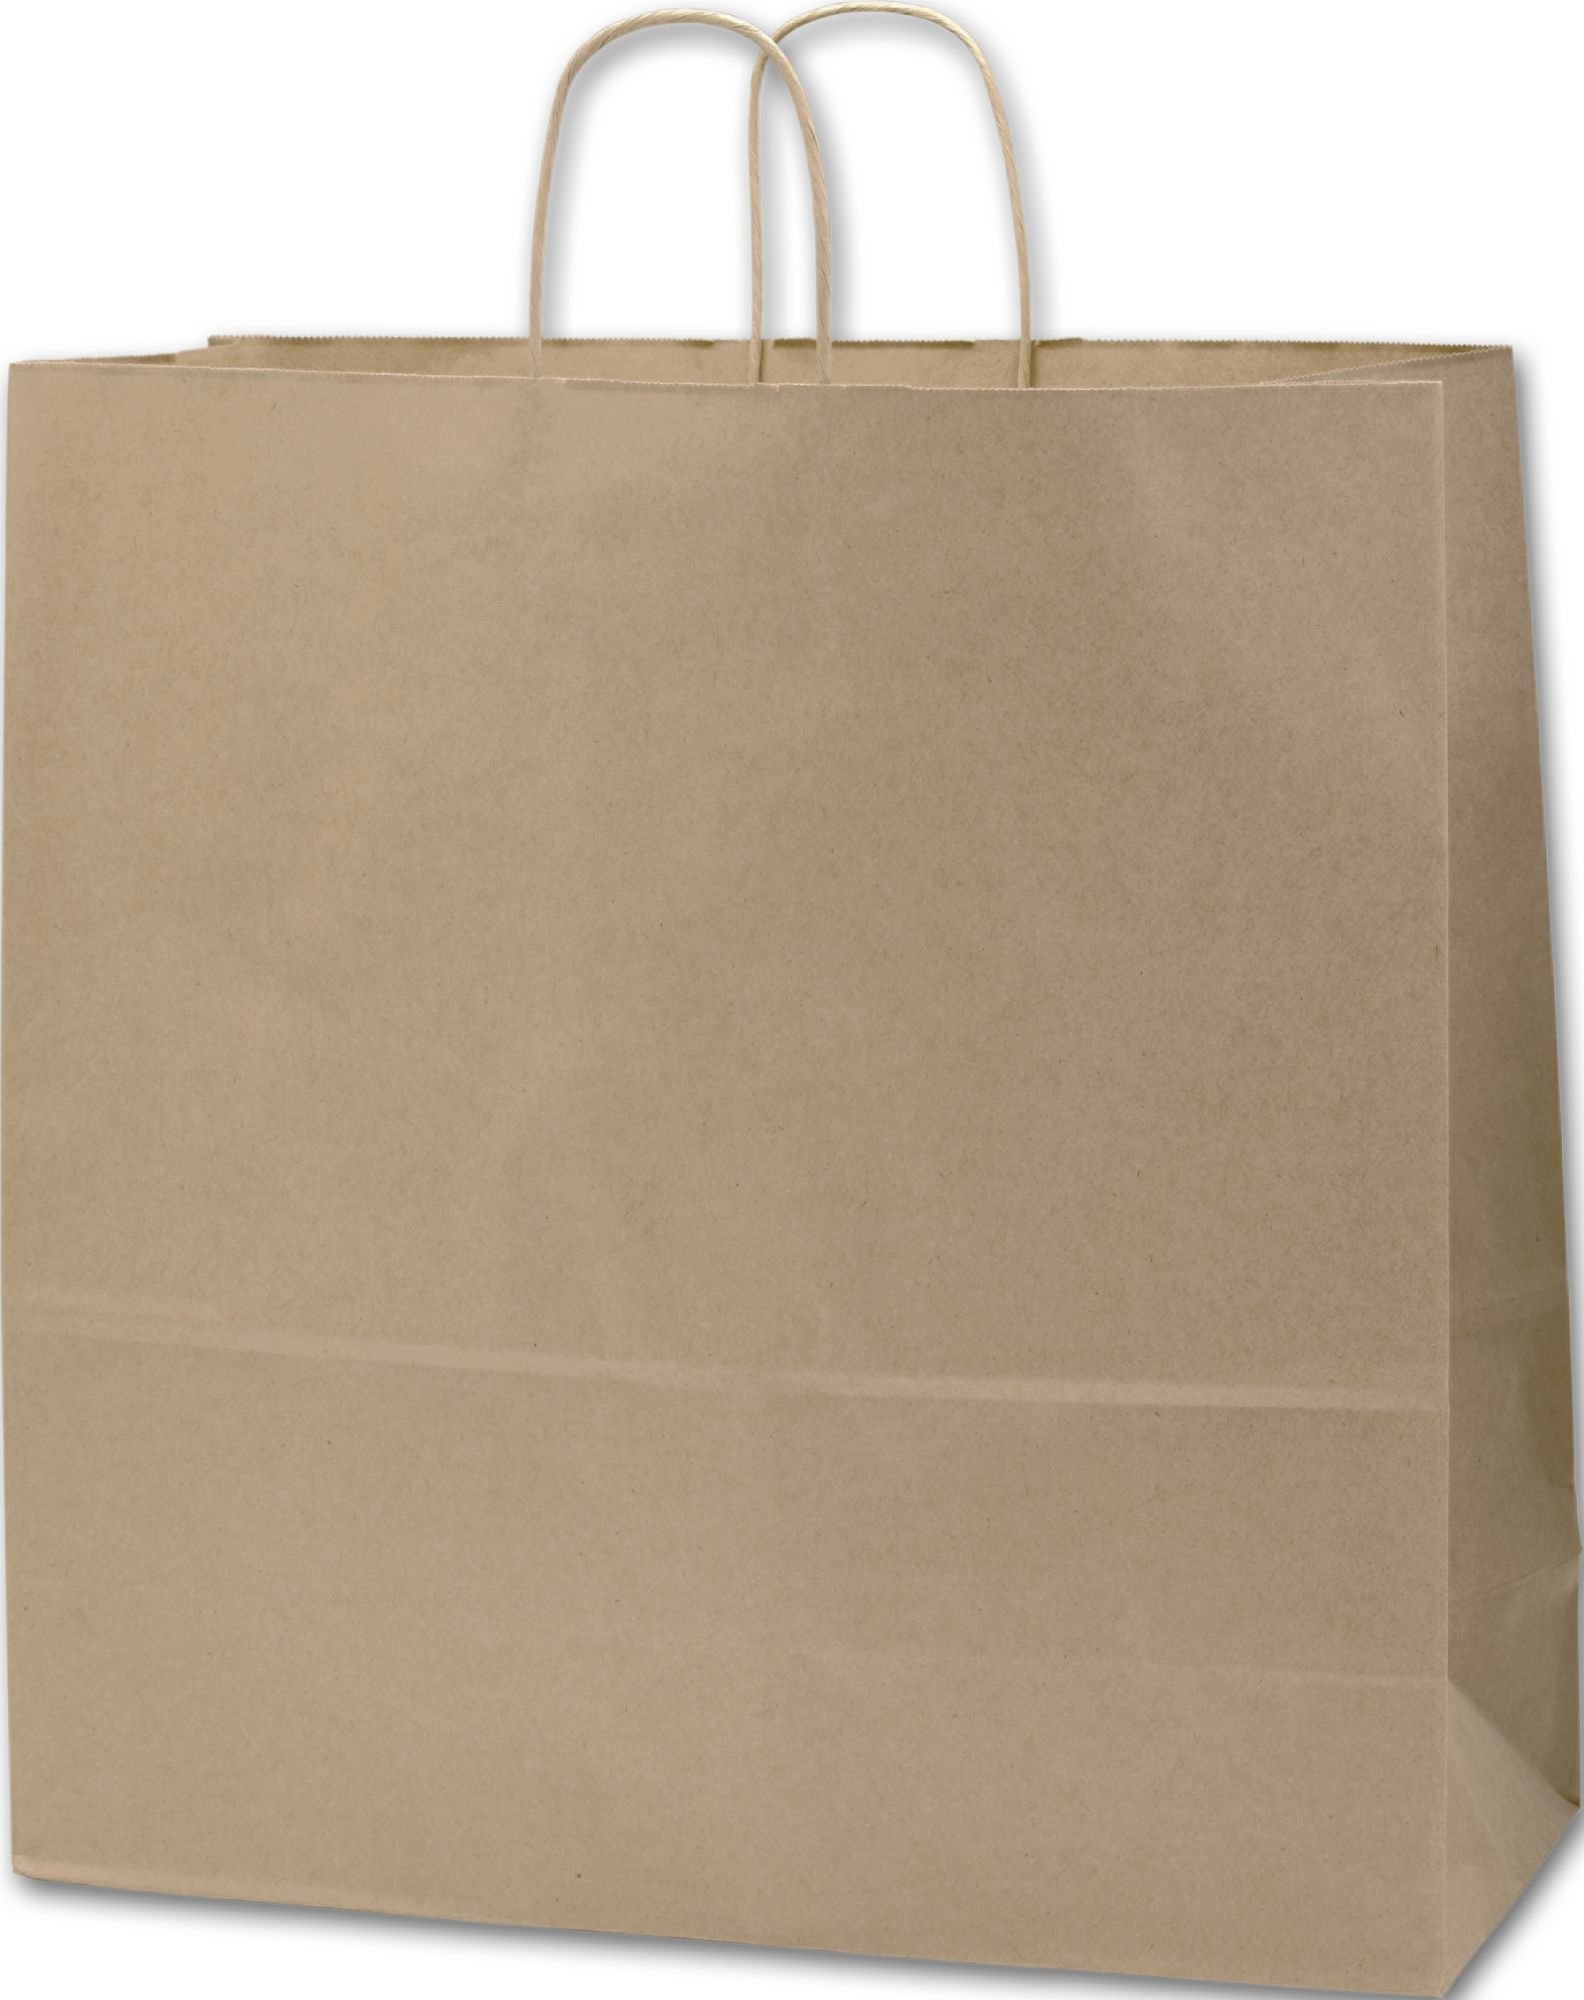 Solid Color Pattern Shopping Bags - Recycled Kraft Paper Shoppers Jumbo, 18 x 7 x 19'' (200 Bags) - BOWS-14-180718-RK